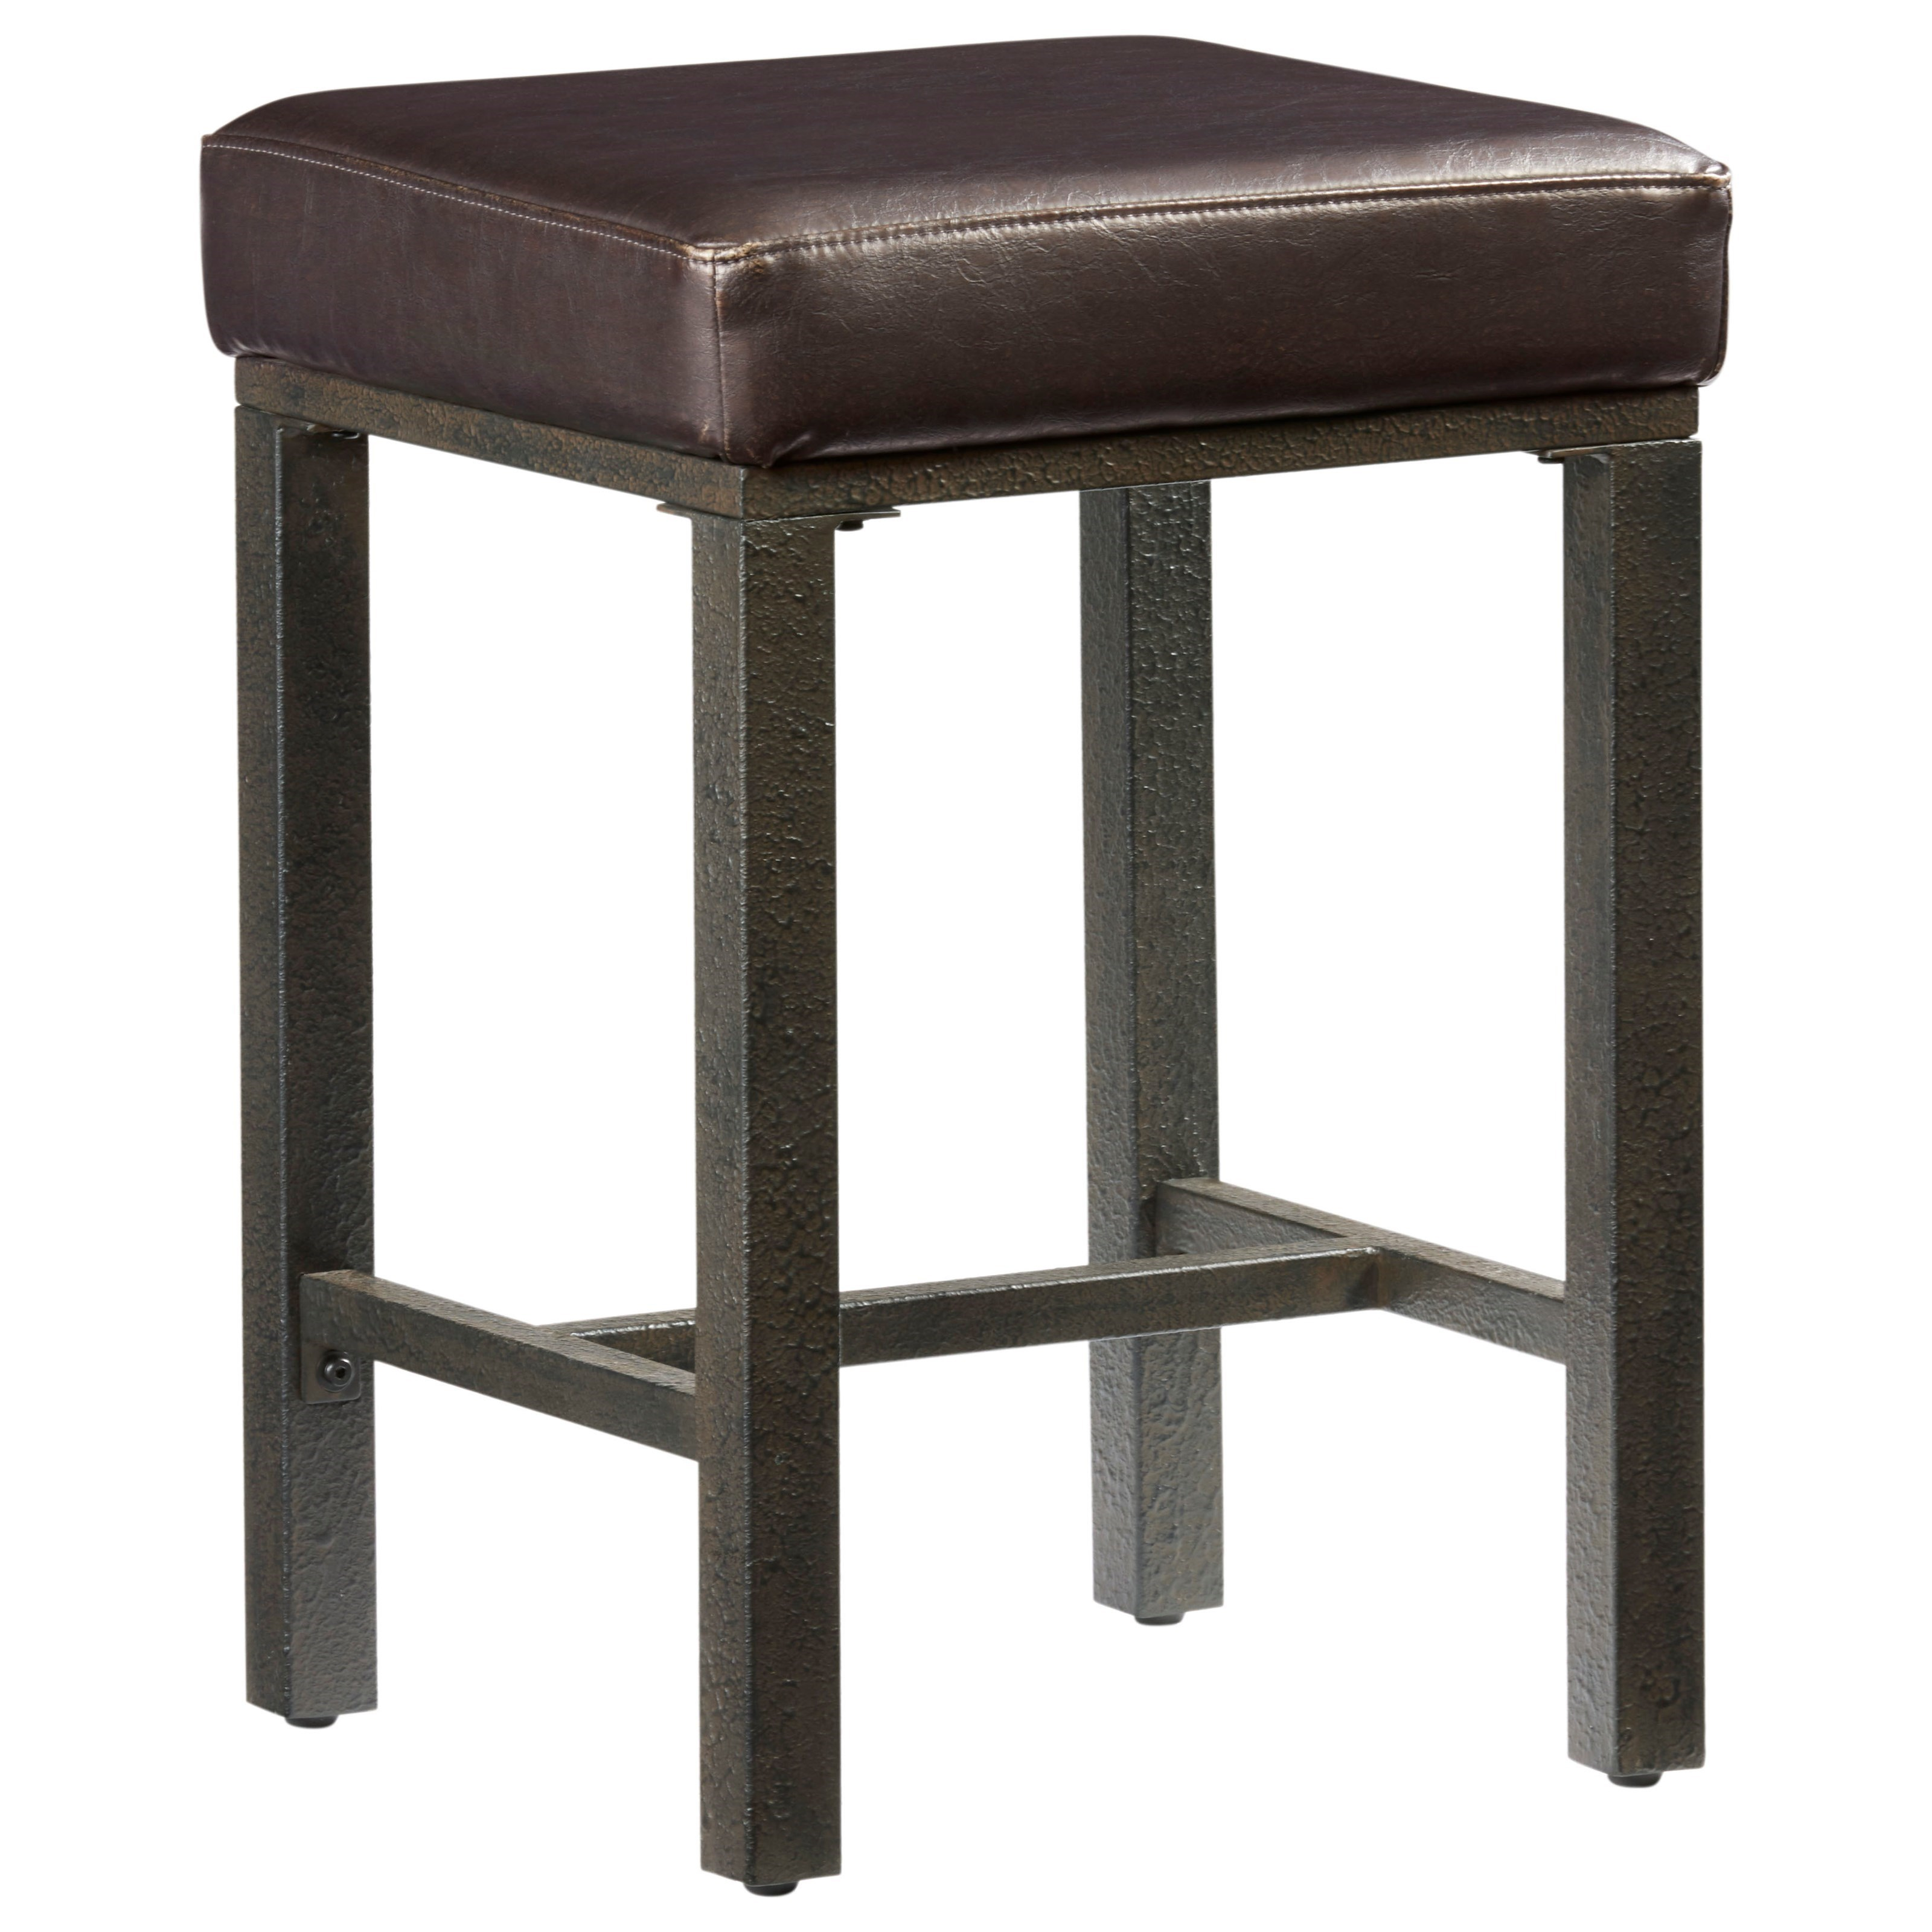 on sale 9b045 982ca Harris Industrial Counter Stool with Upholstered Seat by Progressive  Furniture at Wayside Furniture